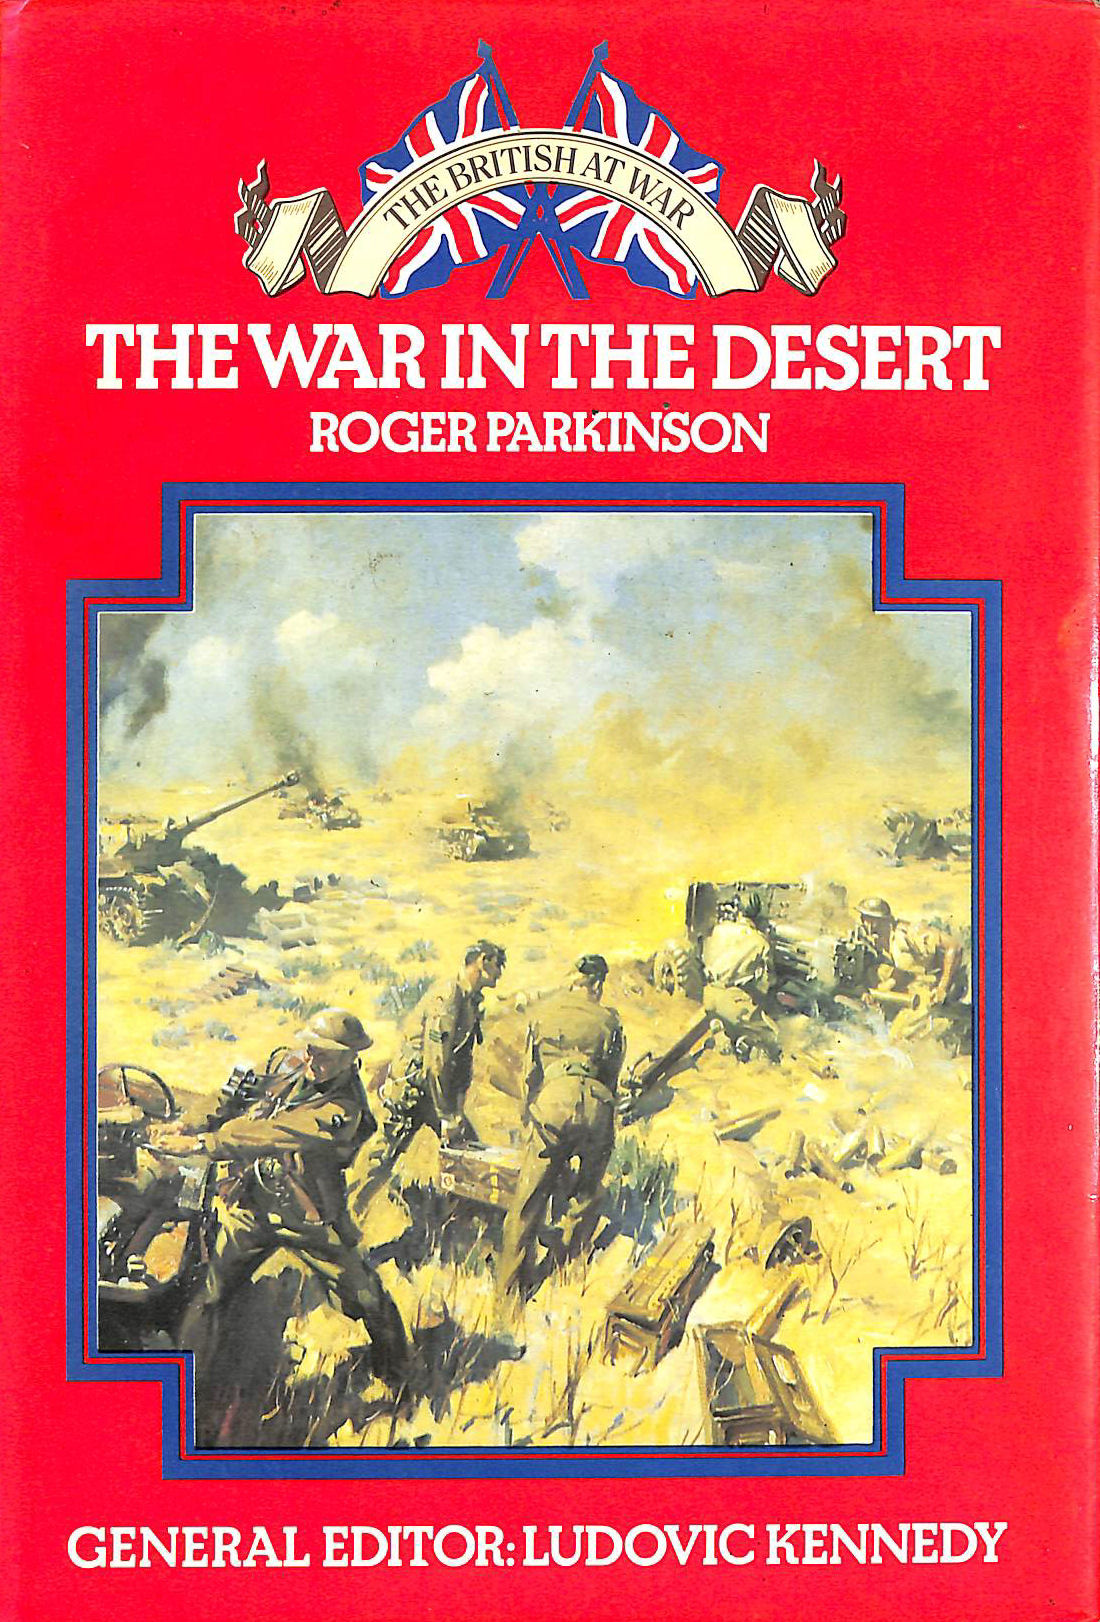 Image for The War In The Desert by Roger Parkinson